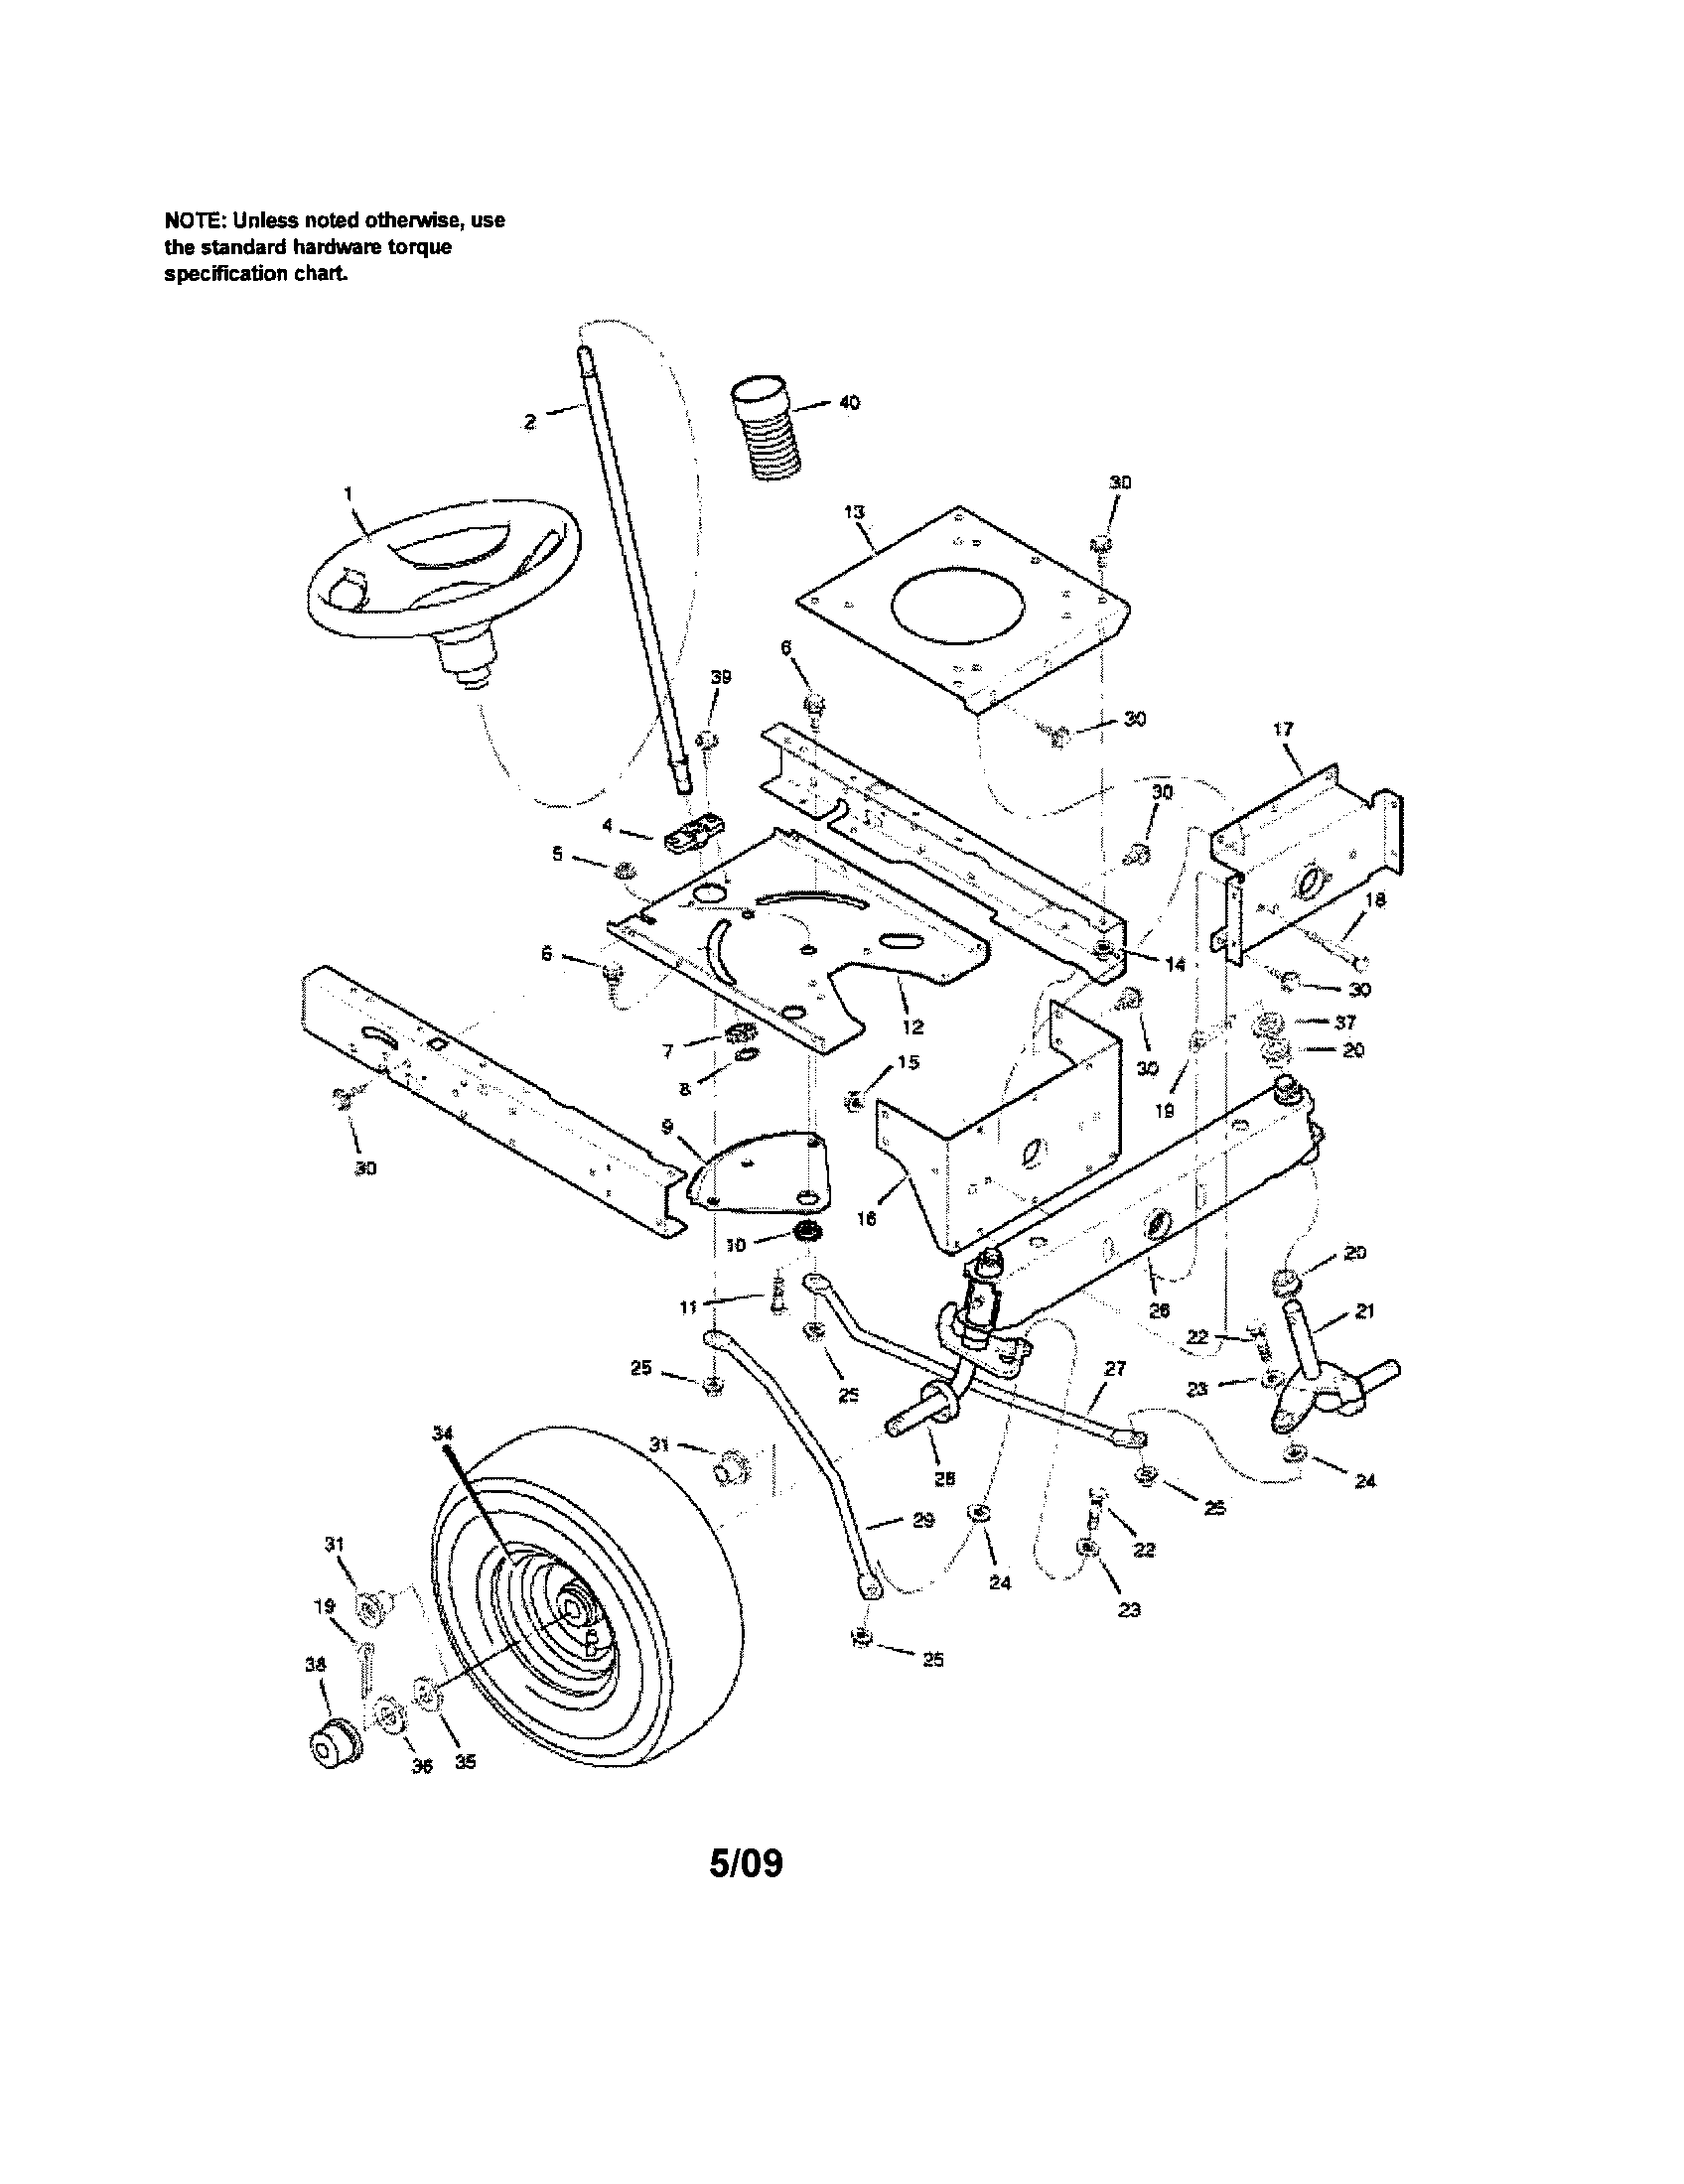 Fisher plow electrical diagram images wiring diagram